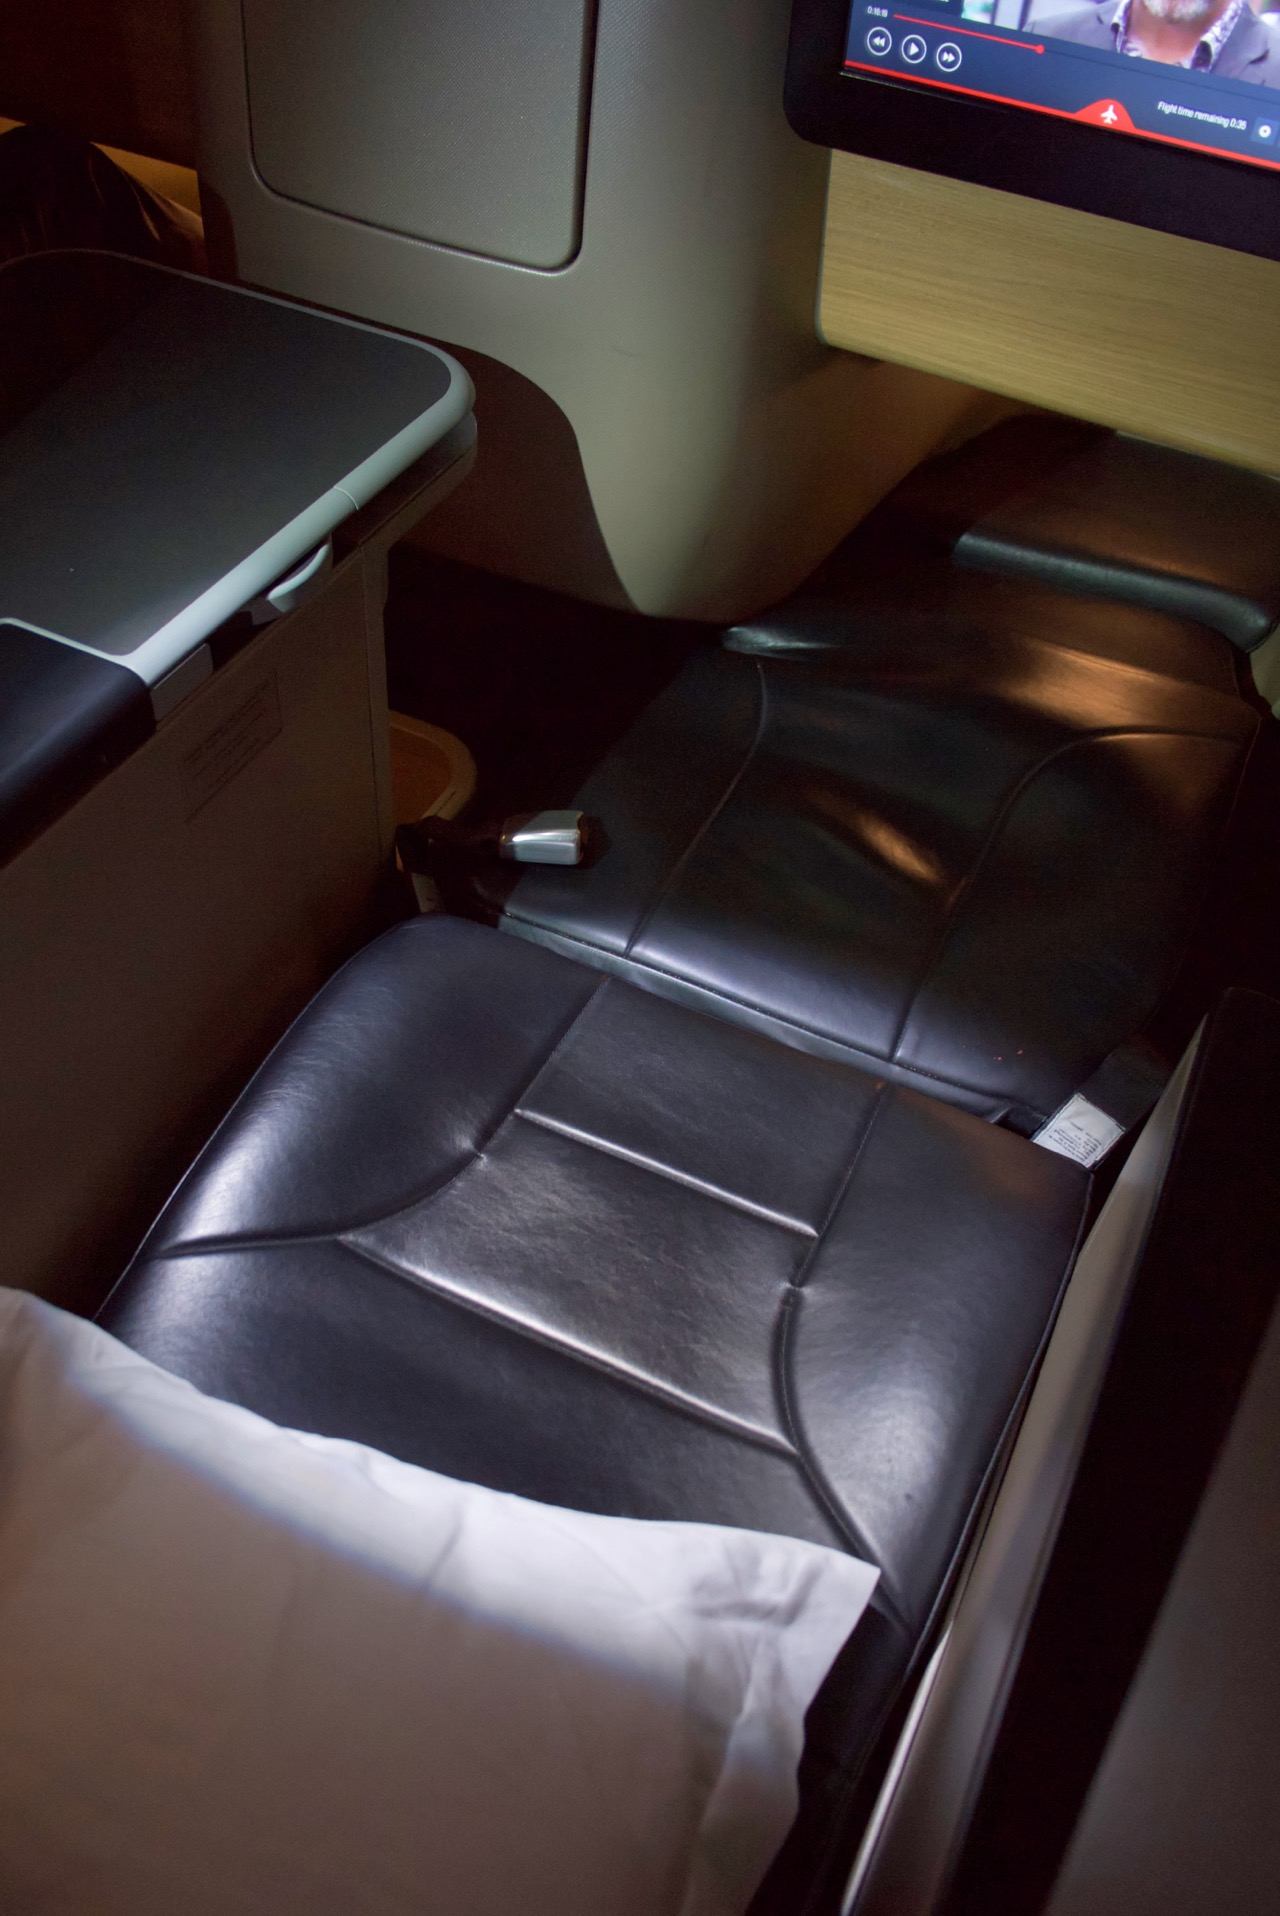 qantas-a330-domestic-business-class-seat-2